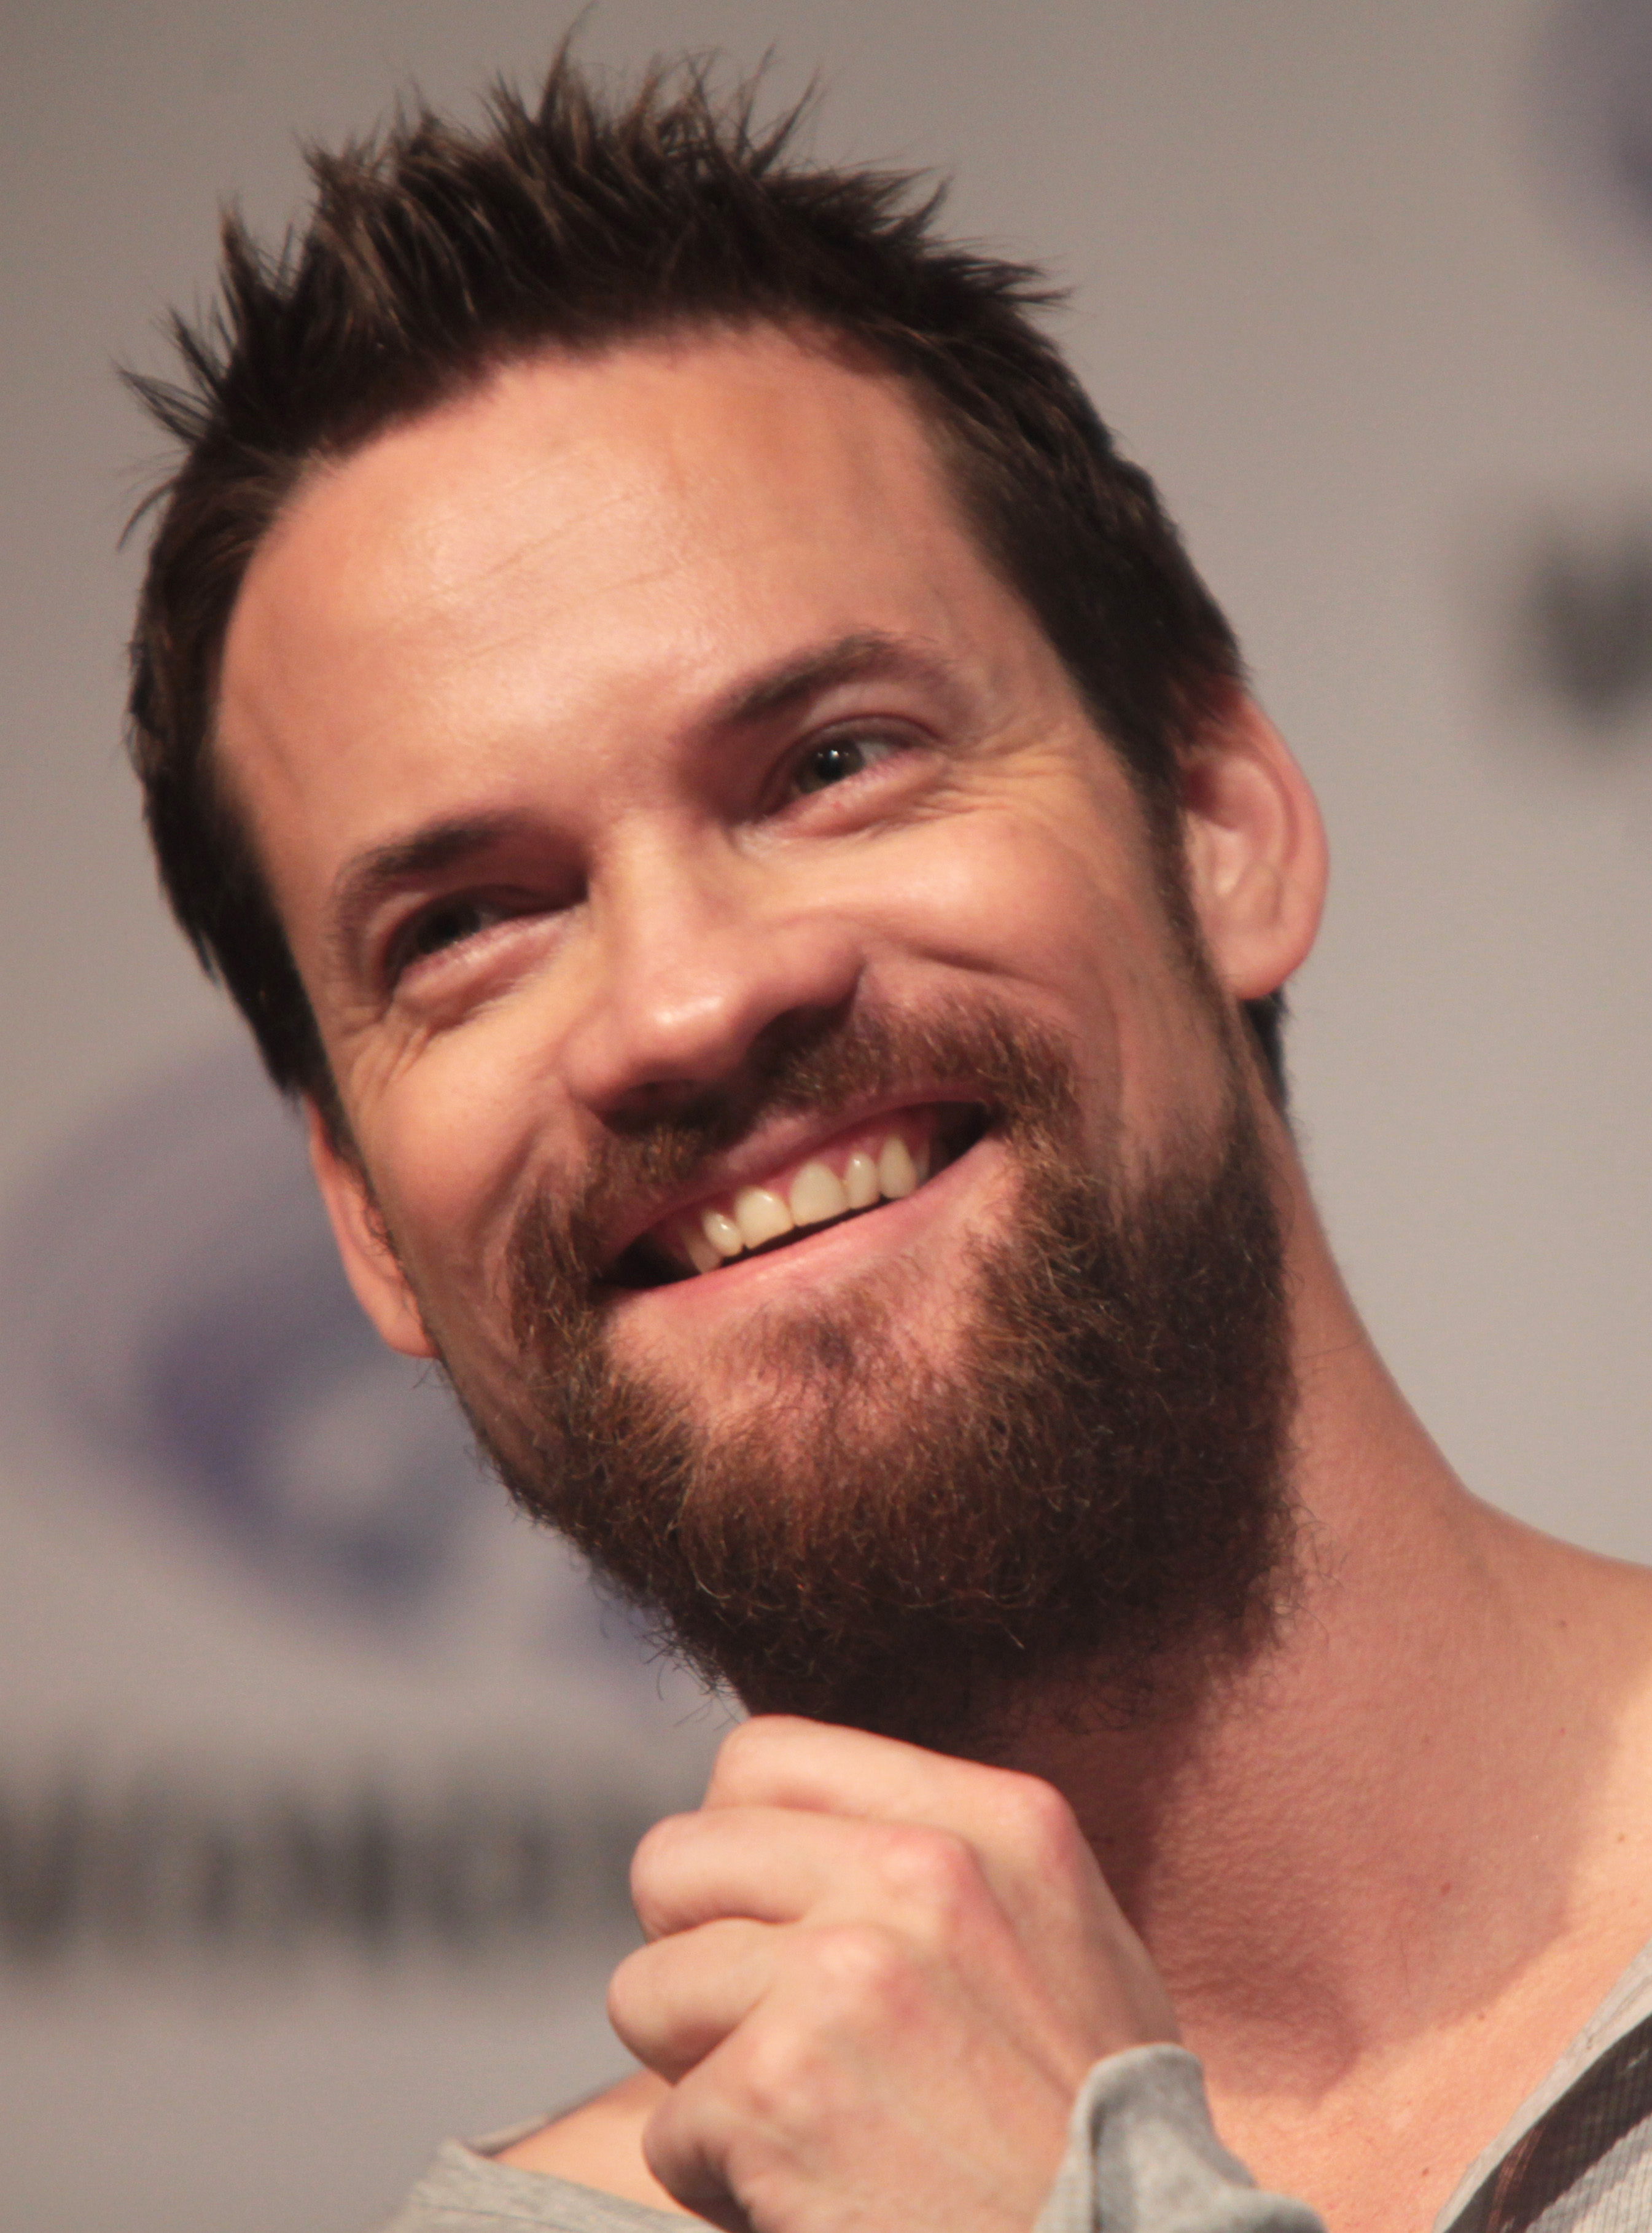 The 40-year old son of father Don Snaith and mother Leah Catherine Snaith Shane West in 2018 photo. Shane West earned a  million dollar salary - leaving the net worth at 3 million in 2018